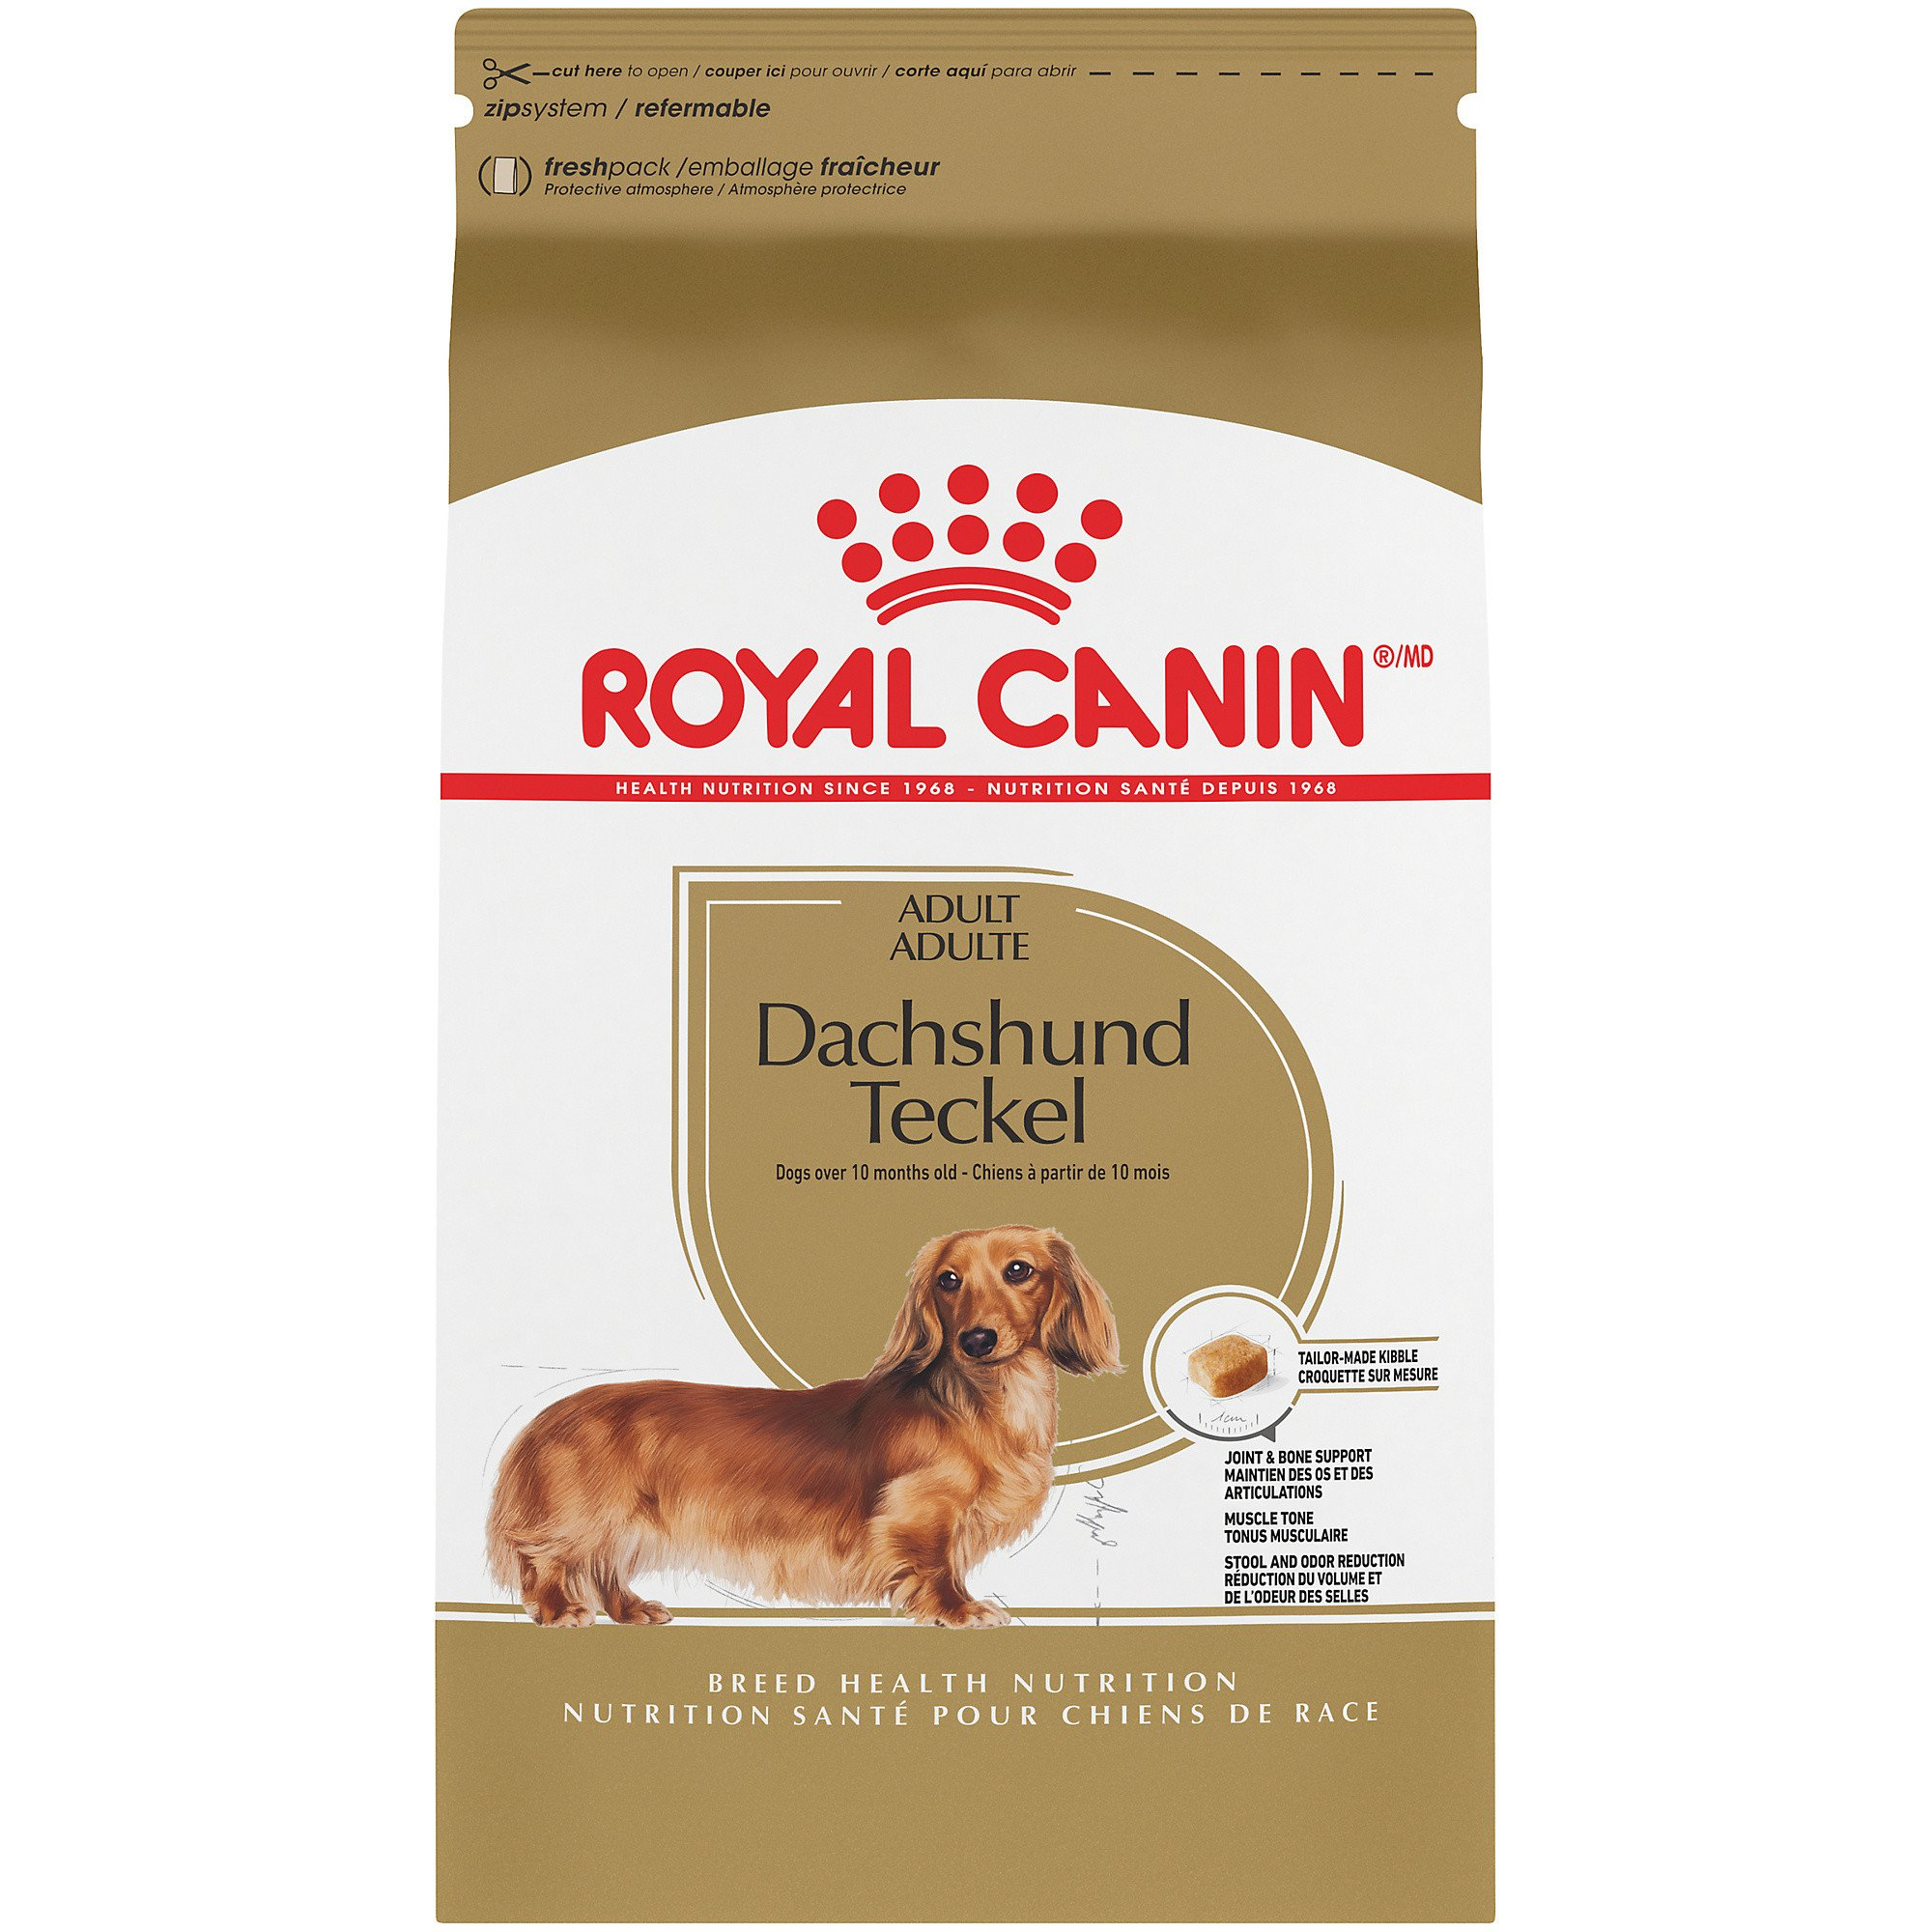 royal canin breed health nutrition dachshund adult dry dog. Black Bedroom Furniture Sets. Home Design Ideas